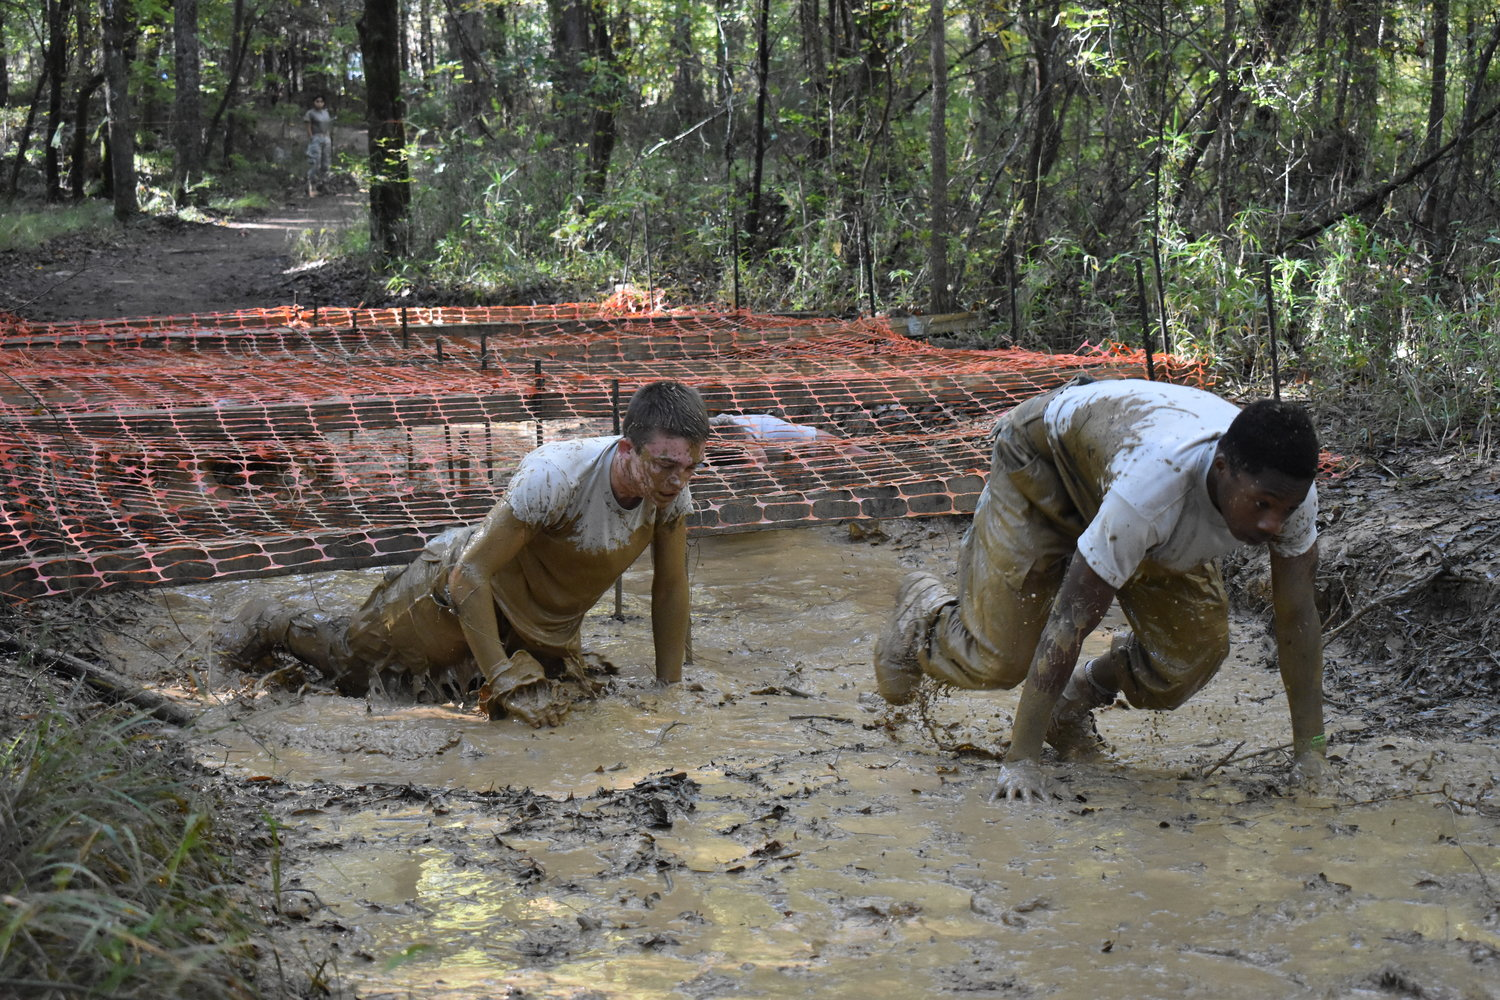 Angel Banda, left, and Brandon Bosdell, members of Adairsville High's male Raiders team, crawl out of the mud pit during the Cross Country Rescue event at the National Raider Championships in Molena Saturday.